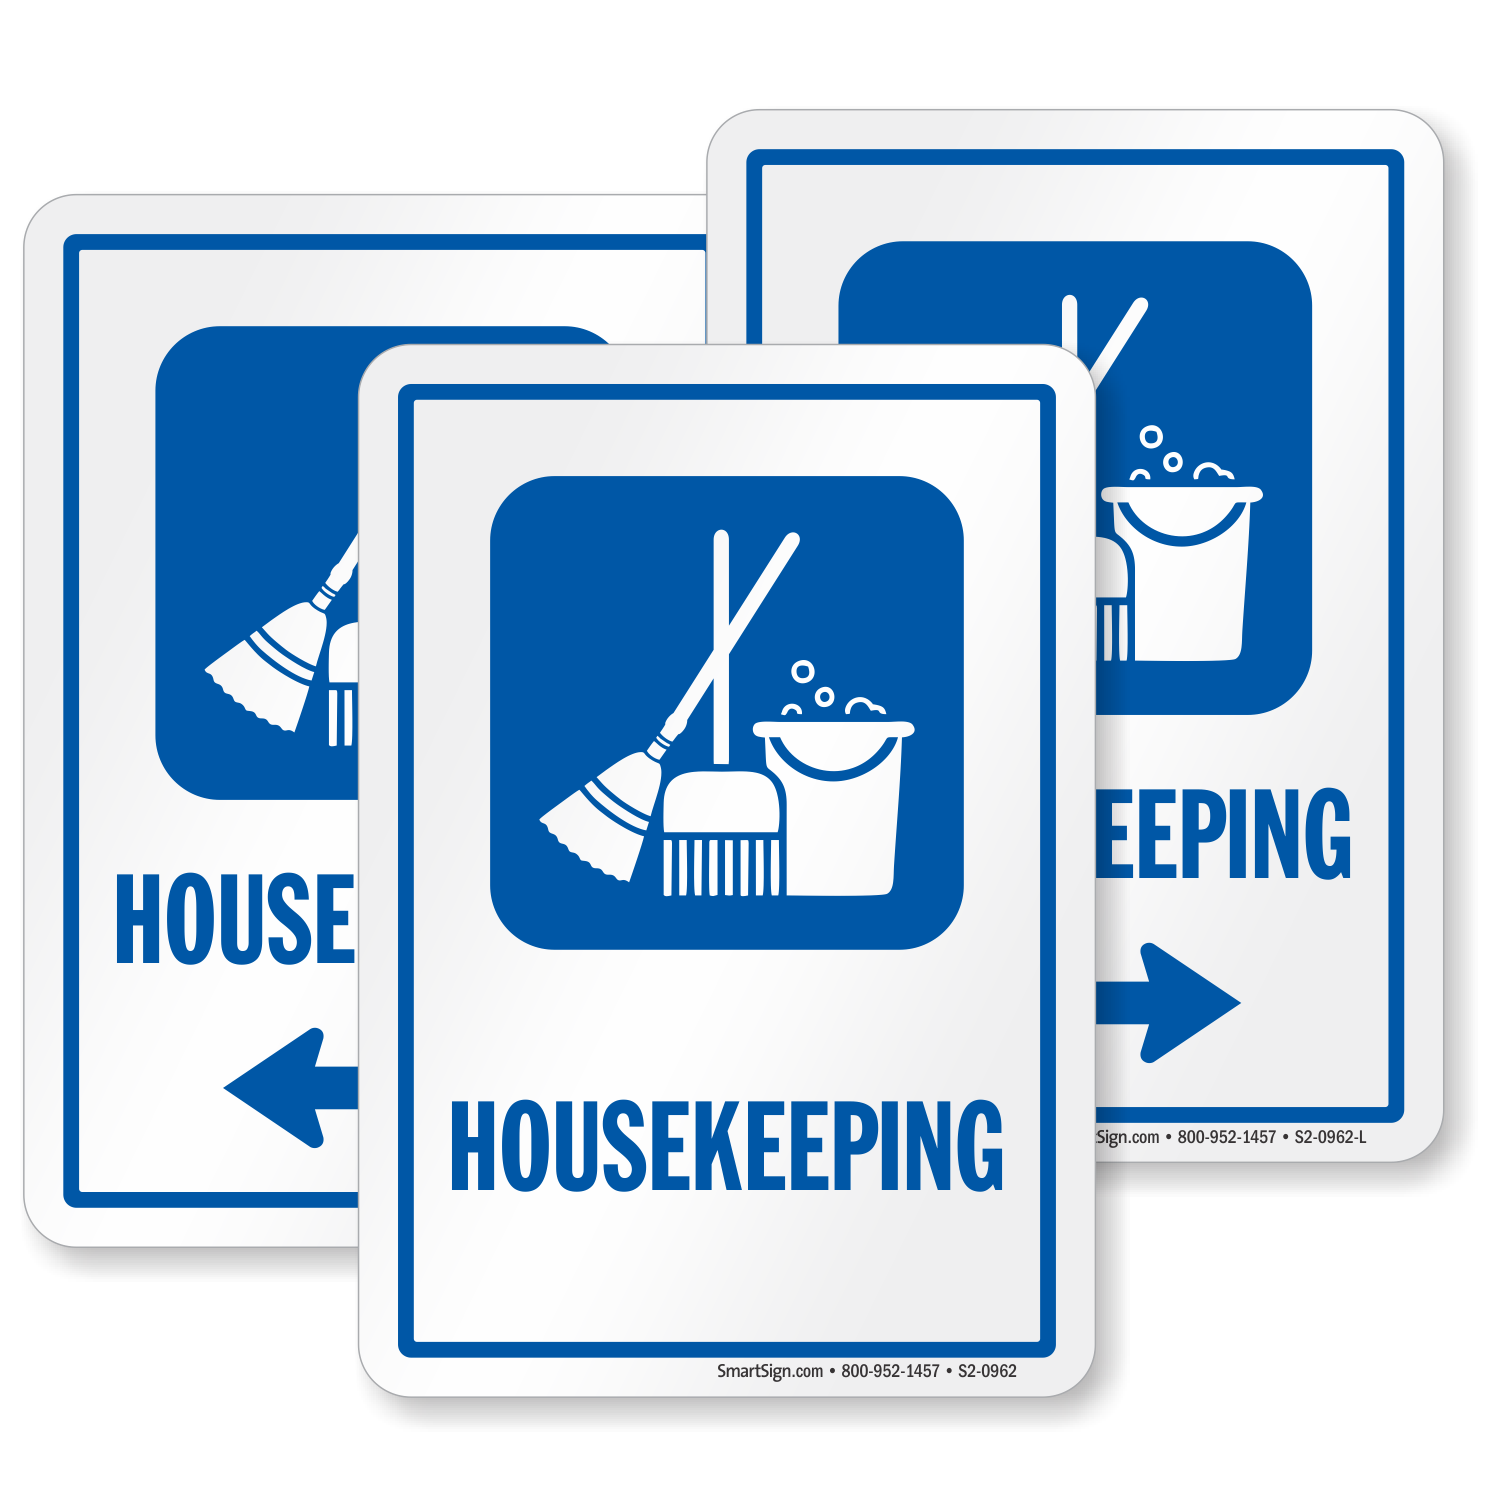 Housekeeping Sign Cleaning Equipment Symbol Sku S2 0962